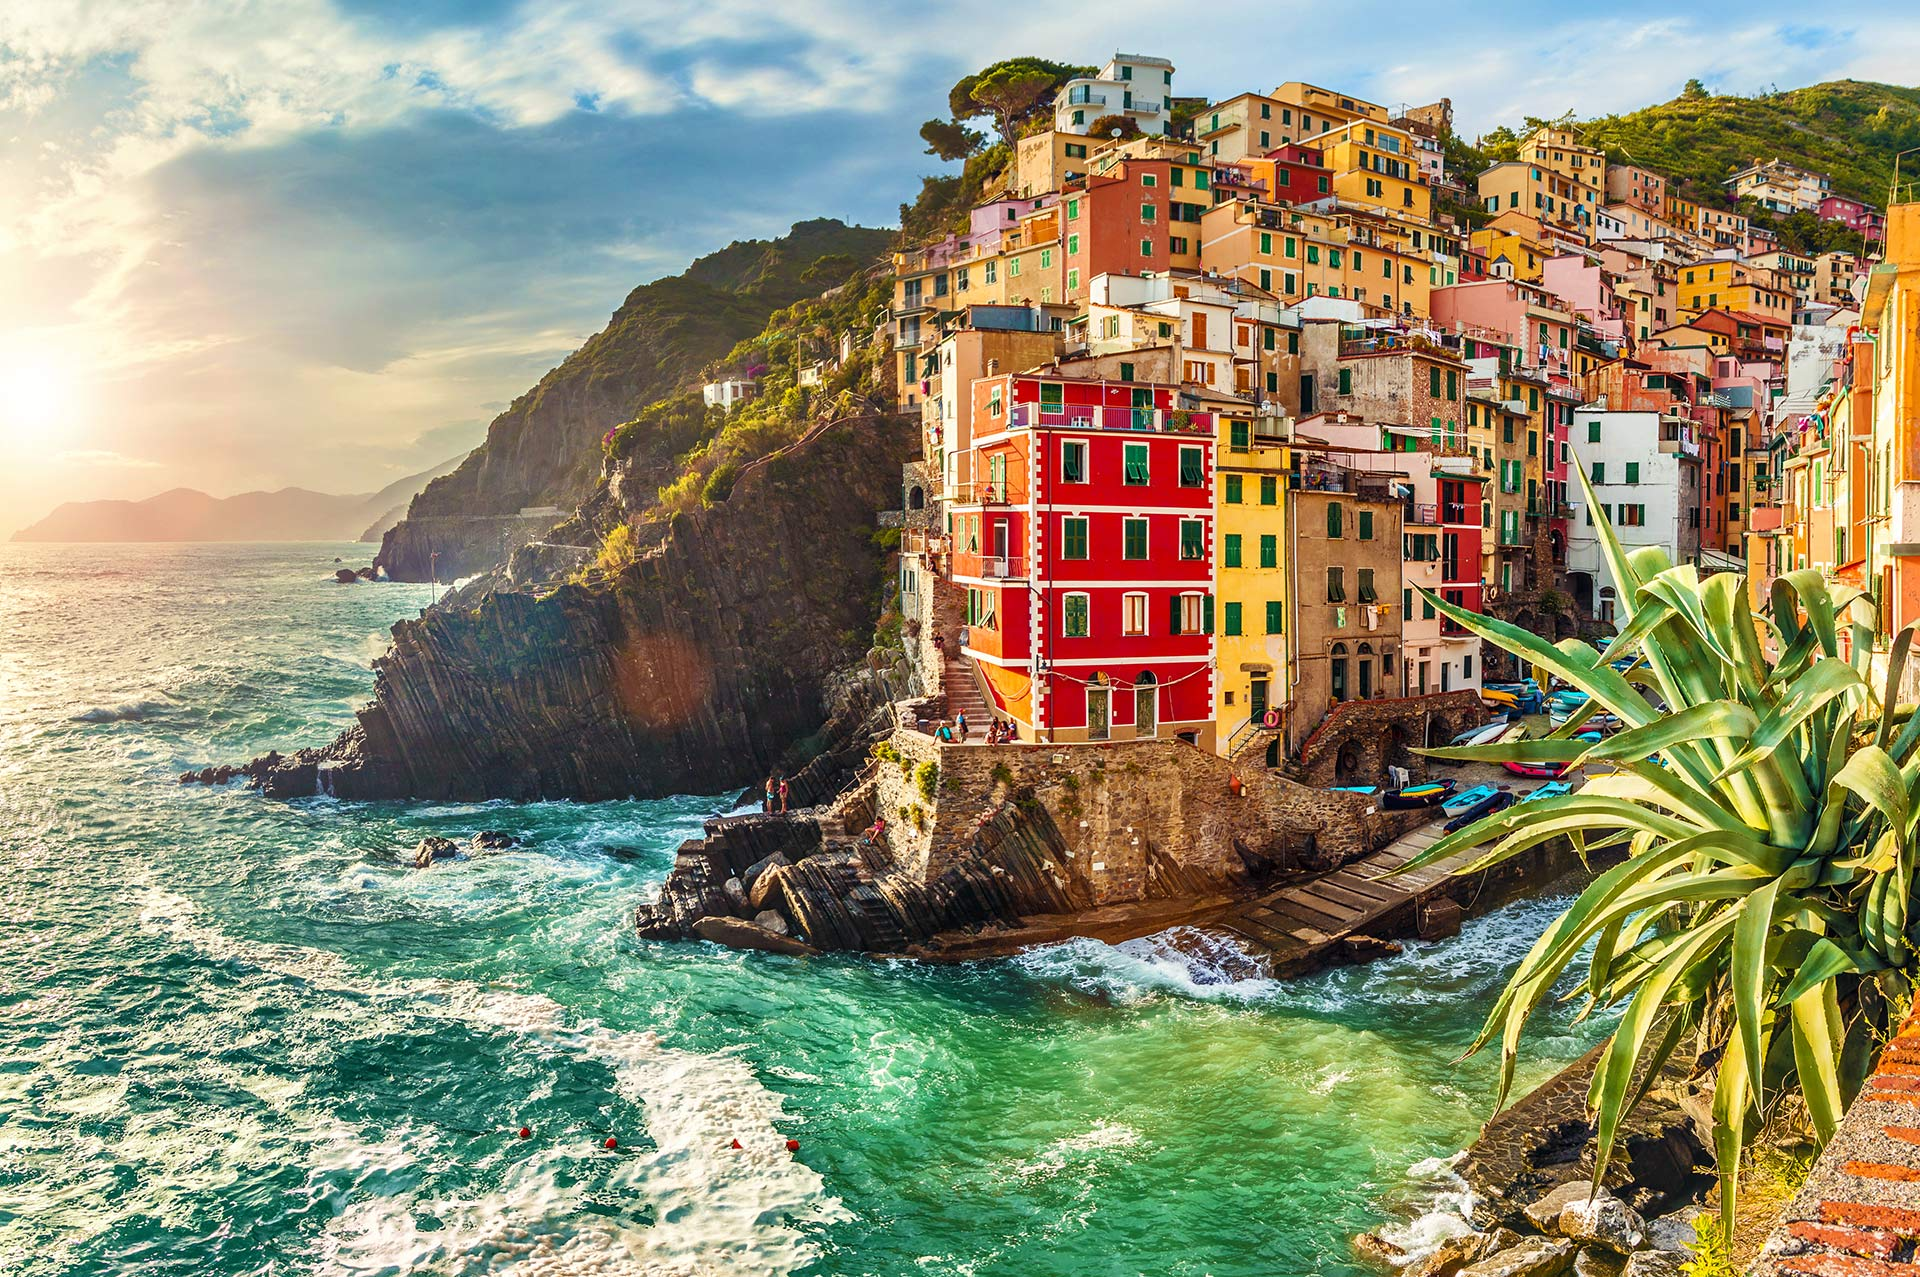 Charter Phone Service >> Abberley Luxury Yachts | Cinque Terre and La Spezia Yacht Charter